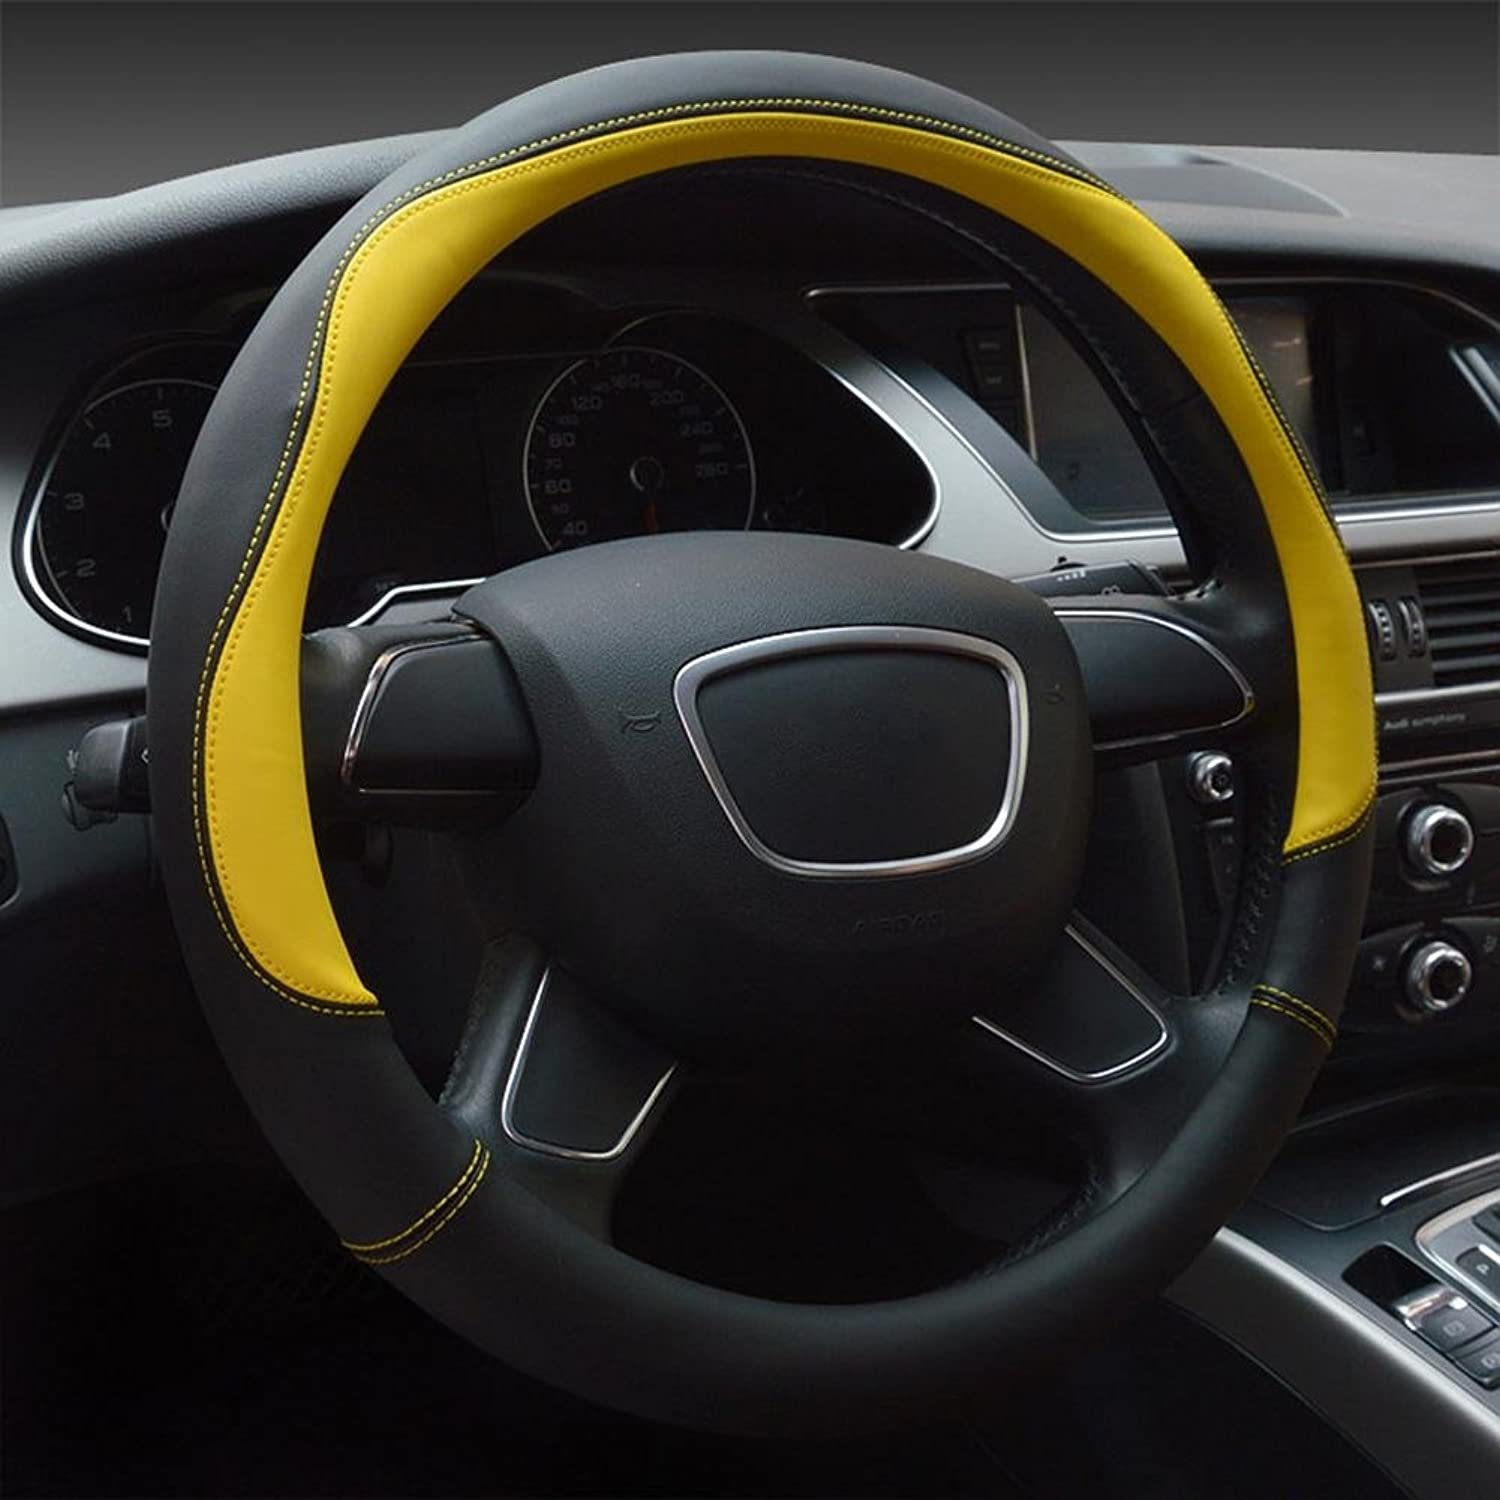 Auto Accessories 2018 New Car Steering Wheel Cover Microfiber Leather Universal, Yellow, 38cm